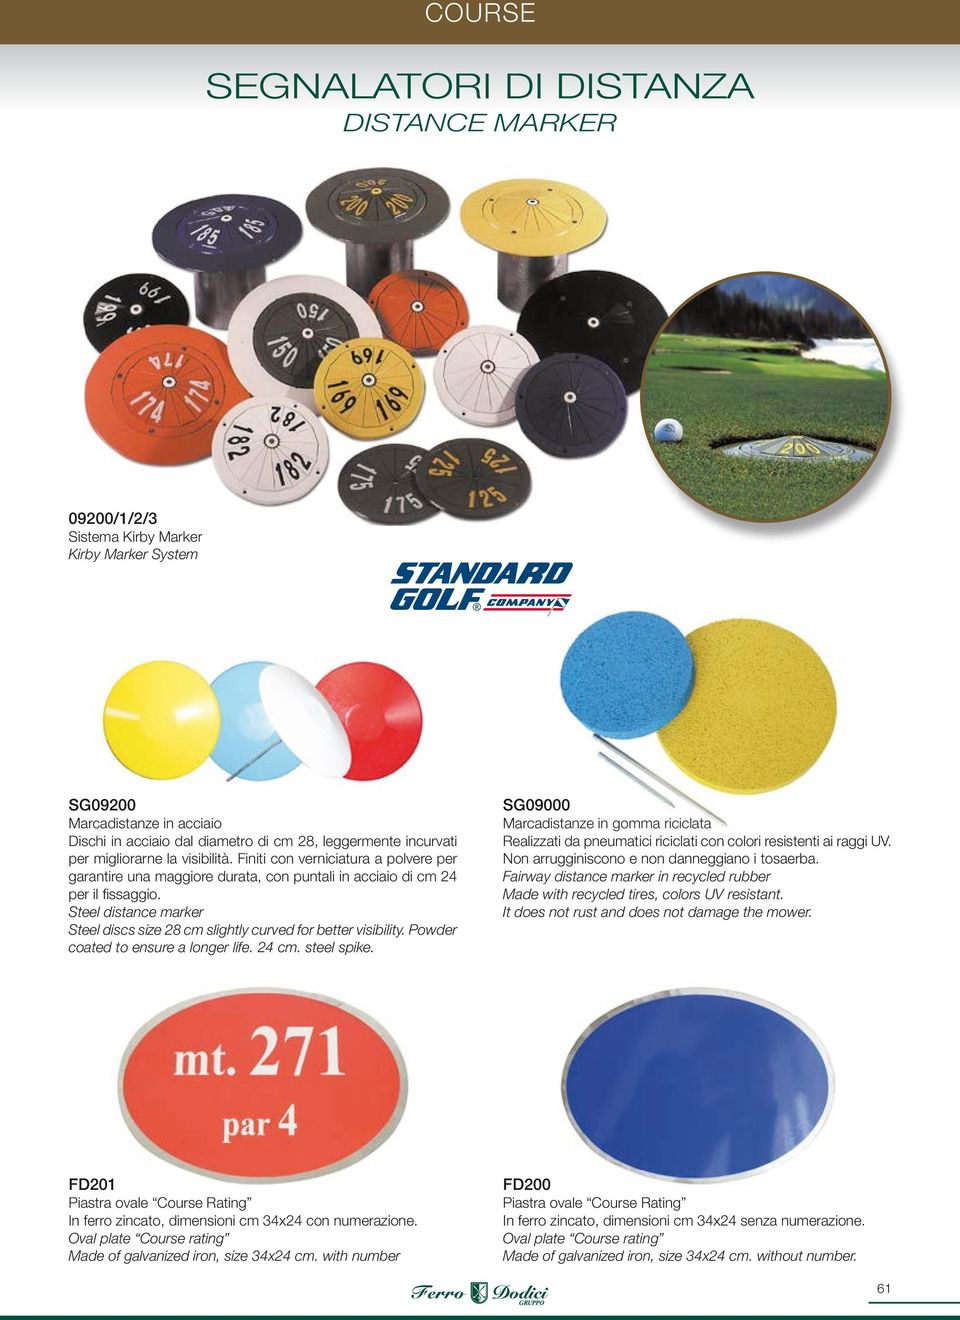 Steel distance marker Steel discs size 28 cm slightly curved for better visibility. Powder coated to ensure a longer life. 24 cm. steel spike.